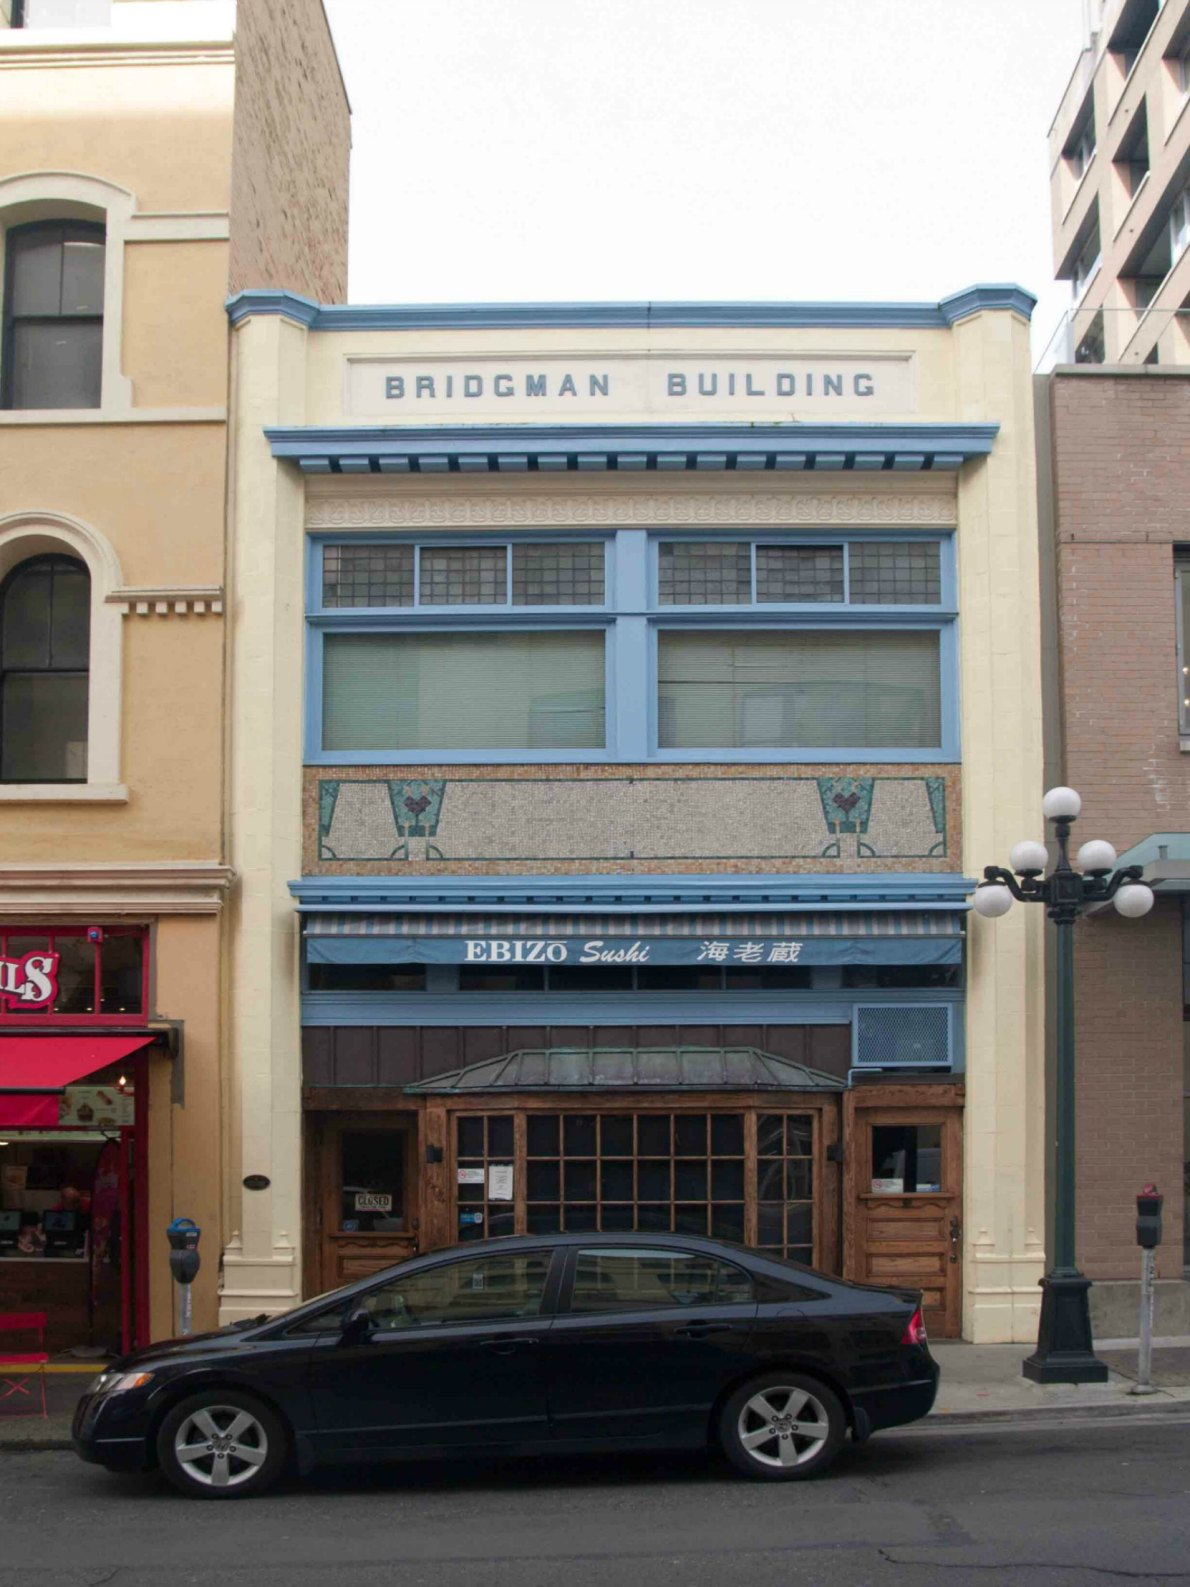 the Bridgman Building, 604 Broughton Street (photo by Victoria Online Sightseeing Tours)